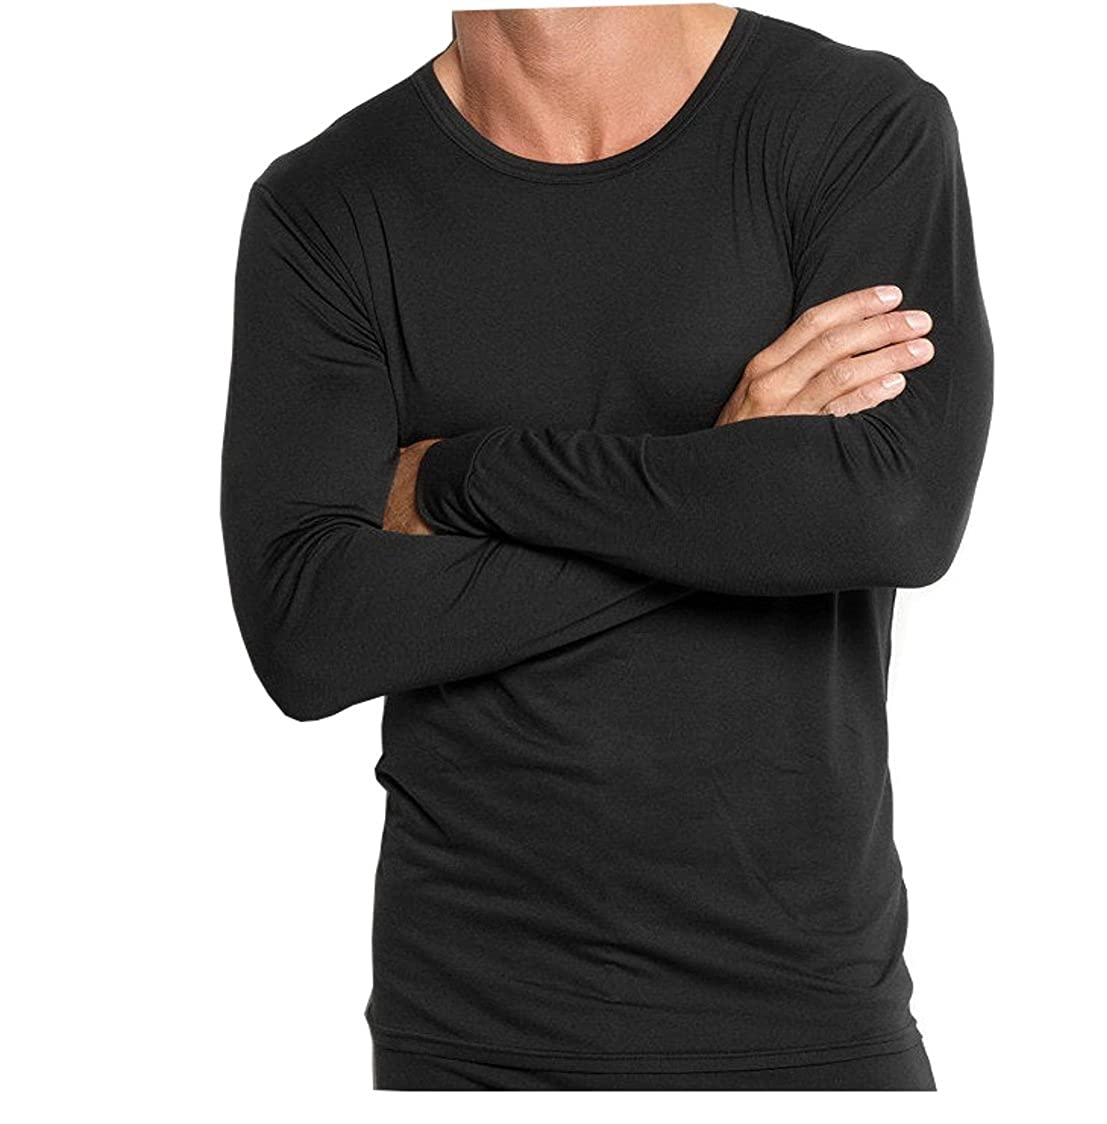 Different Touch Big /& Tall Mens USA Classic Design Base Layer Performance Underwear Top Long John Long Sleeve Tee Shirts